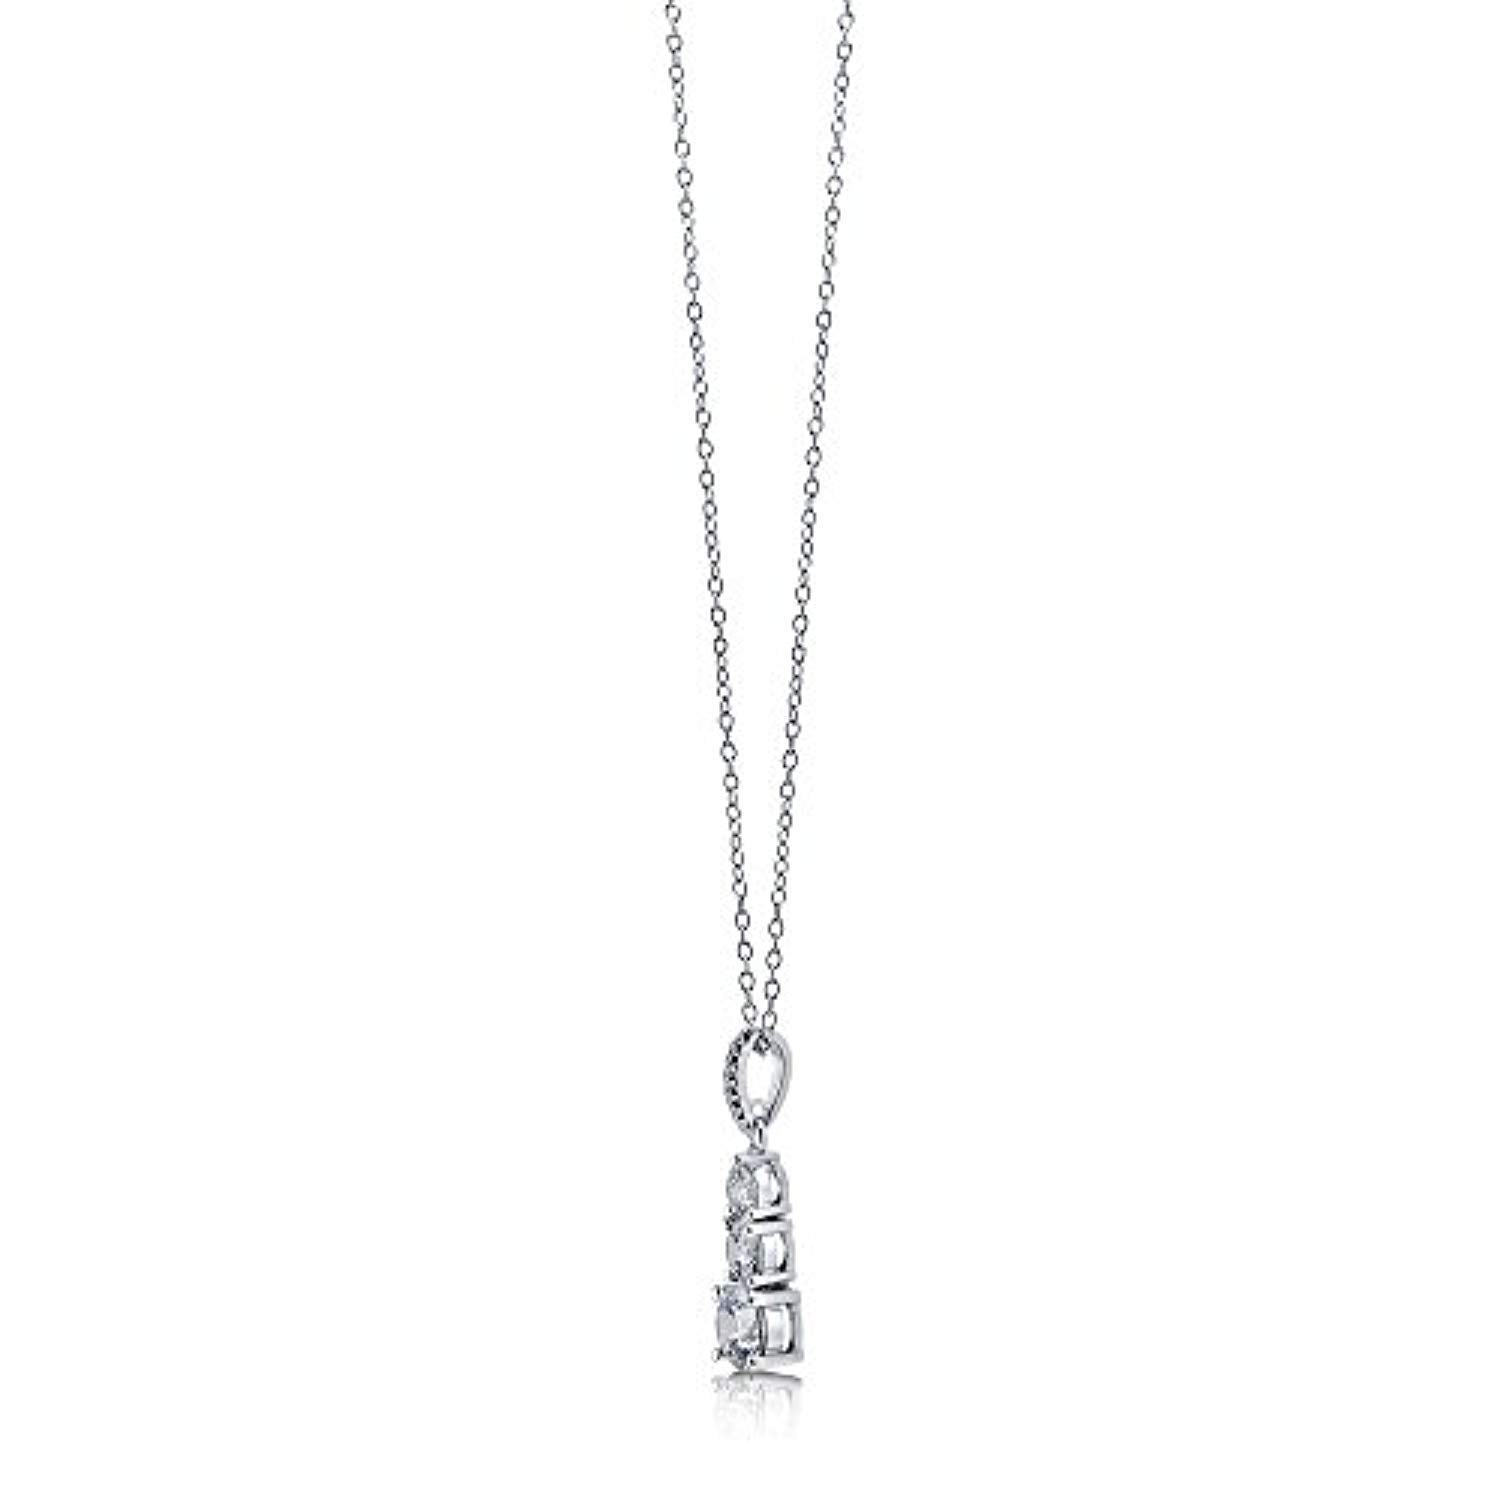 Rhodium Plated Sterling Silver 3-Stone Pendant Necklace Made with Swarovski Zirconia Round